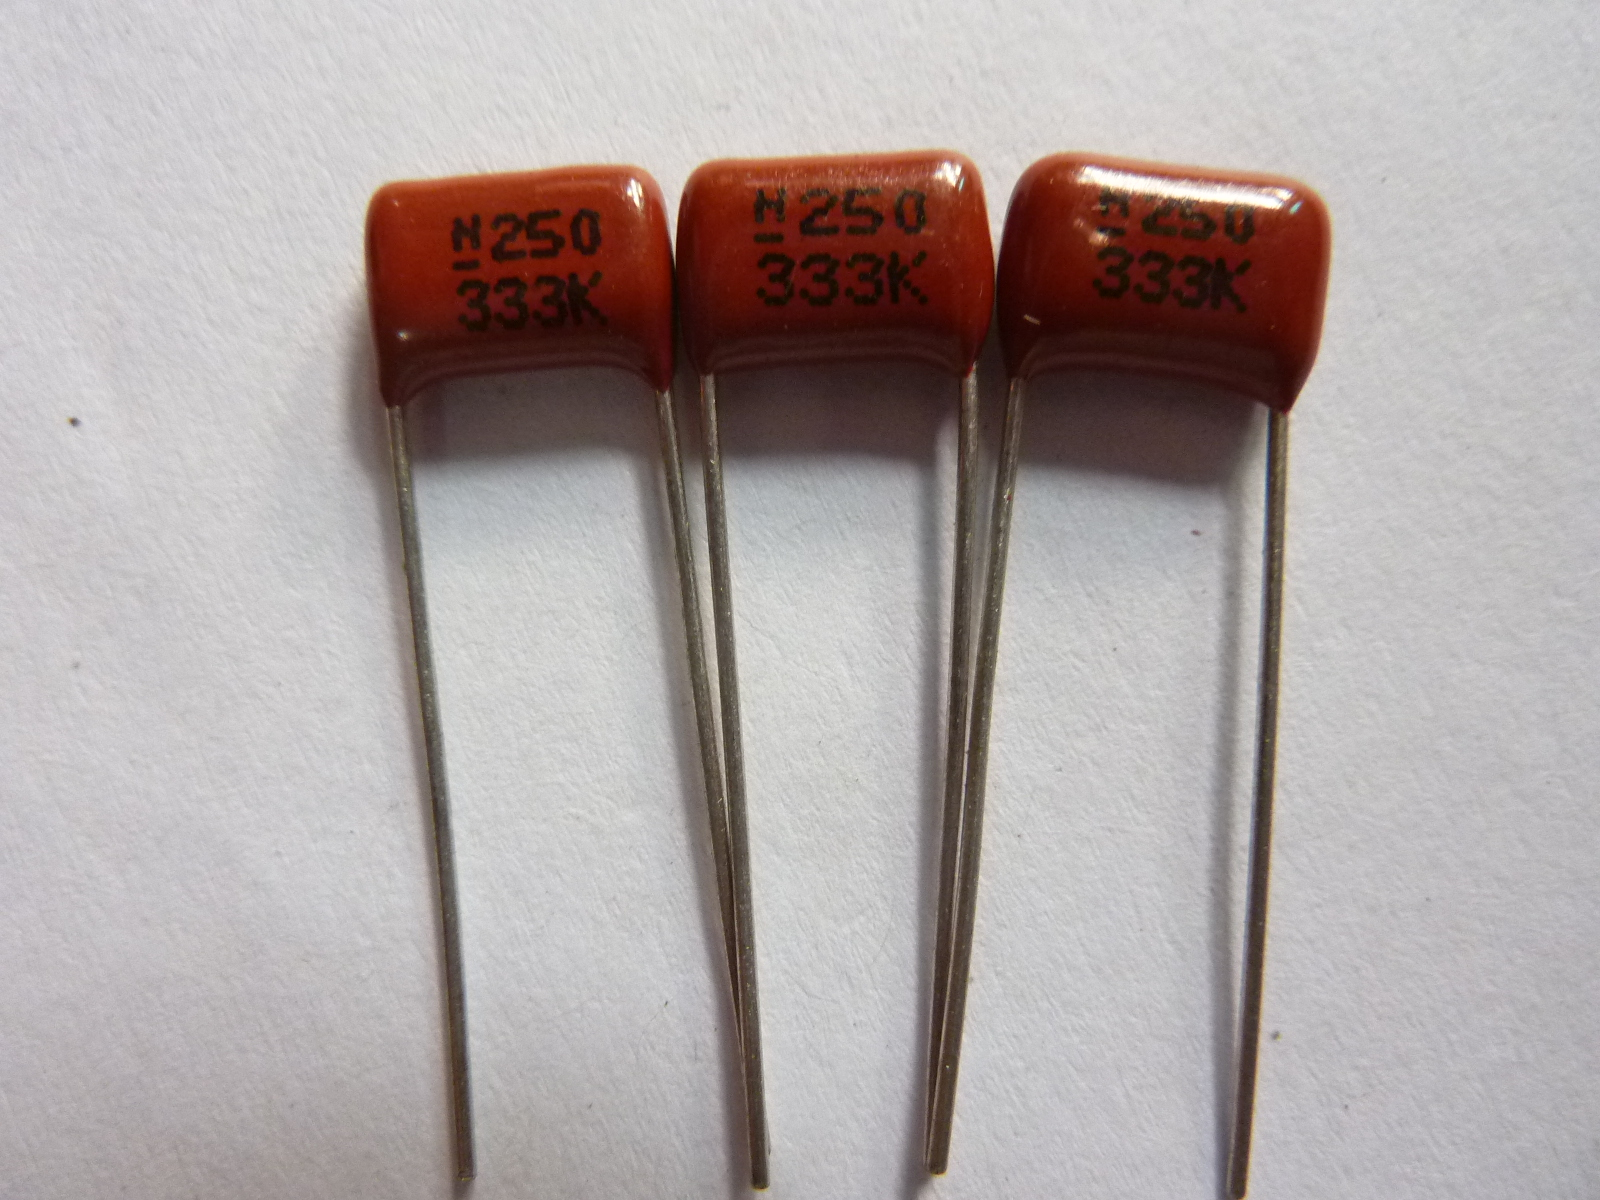 10pcs CBB Capacitor 333 250V 333K 0.033uF 33nF P8 CL21 Metallized Polypropylene Film Capacitor